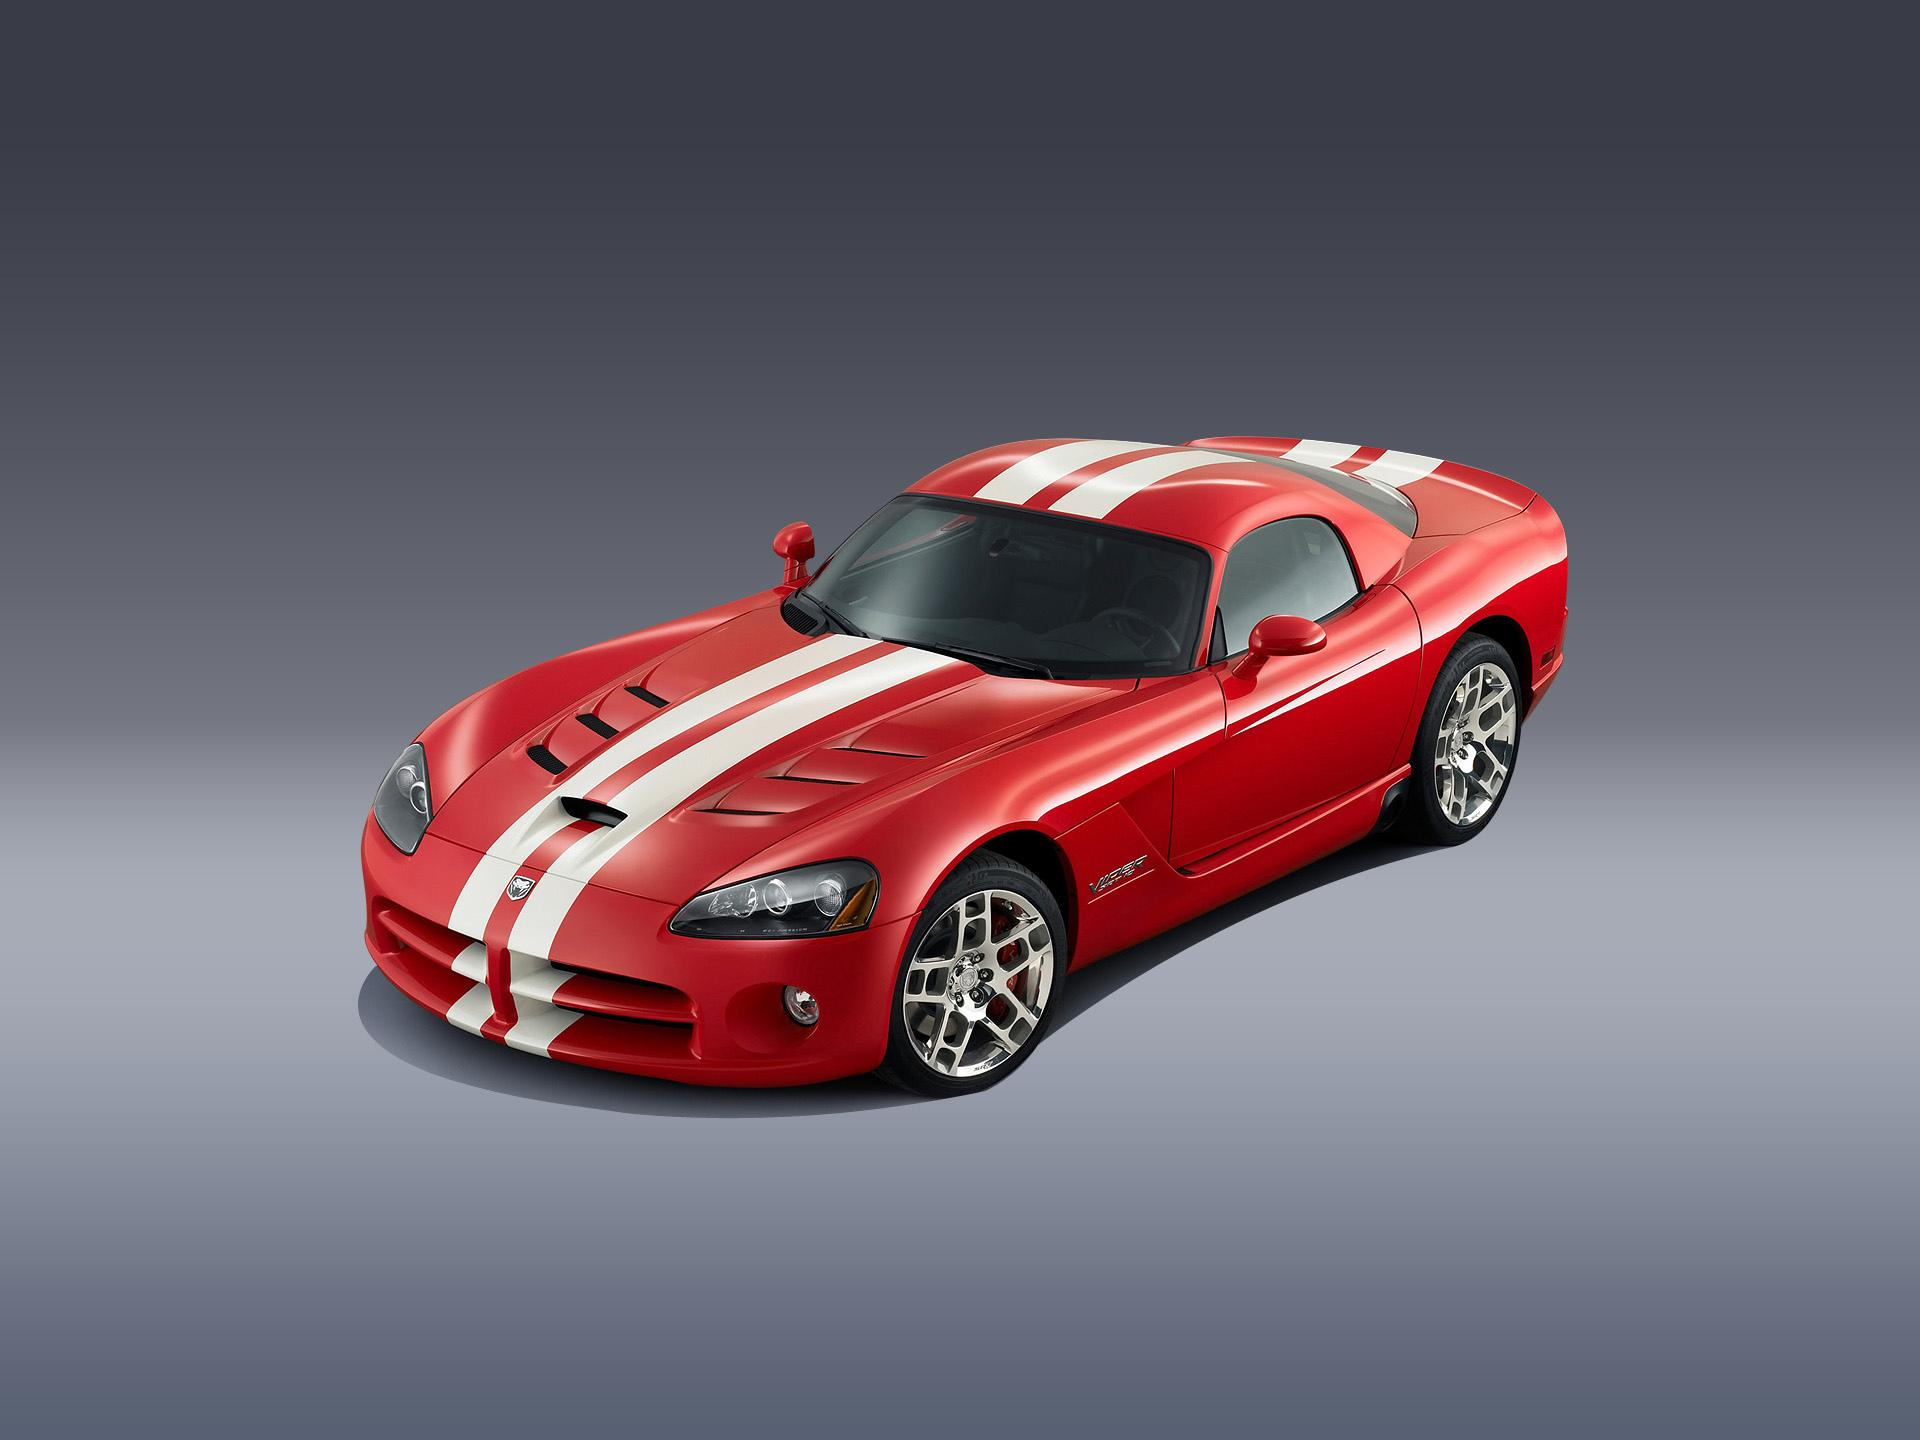 dodge viper srt 10 wallpaper hd download. Black Bedroom Furniture Sets. Home Design Ideas